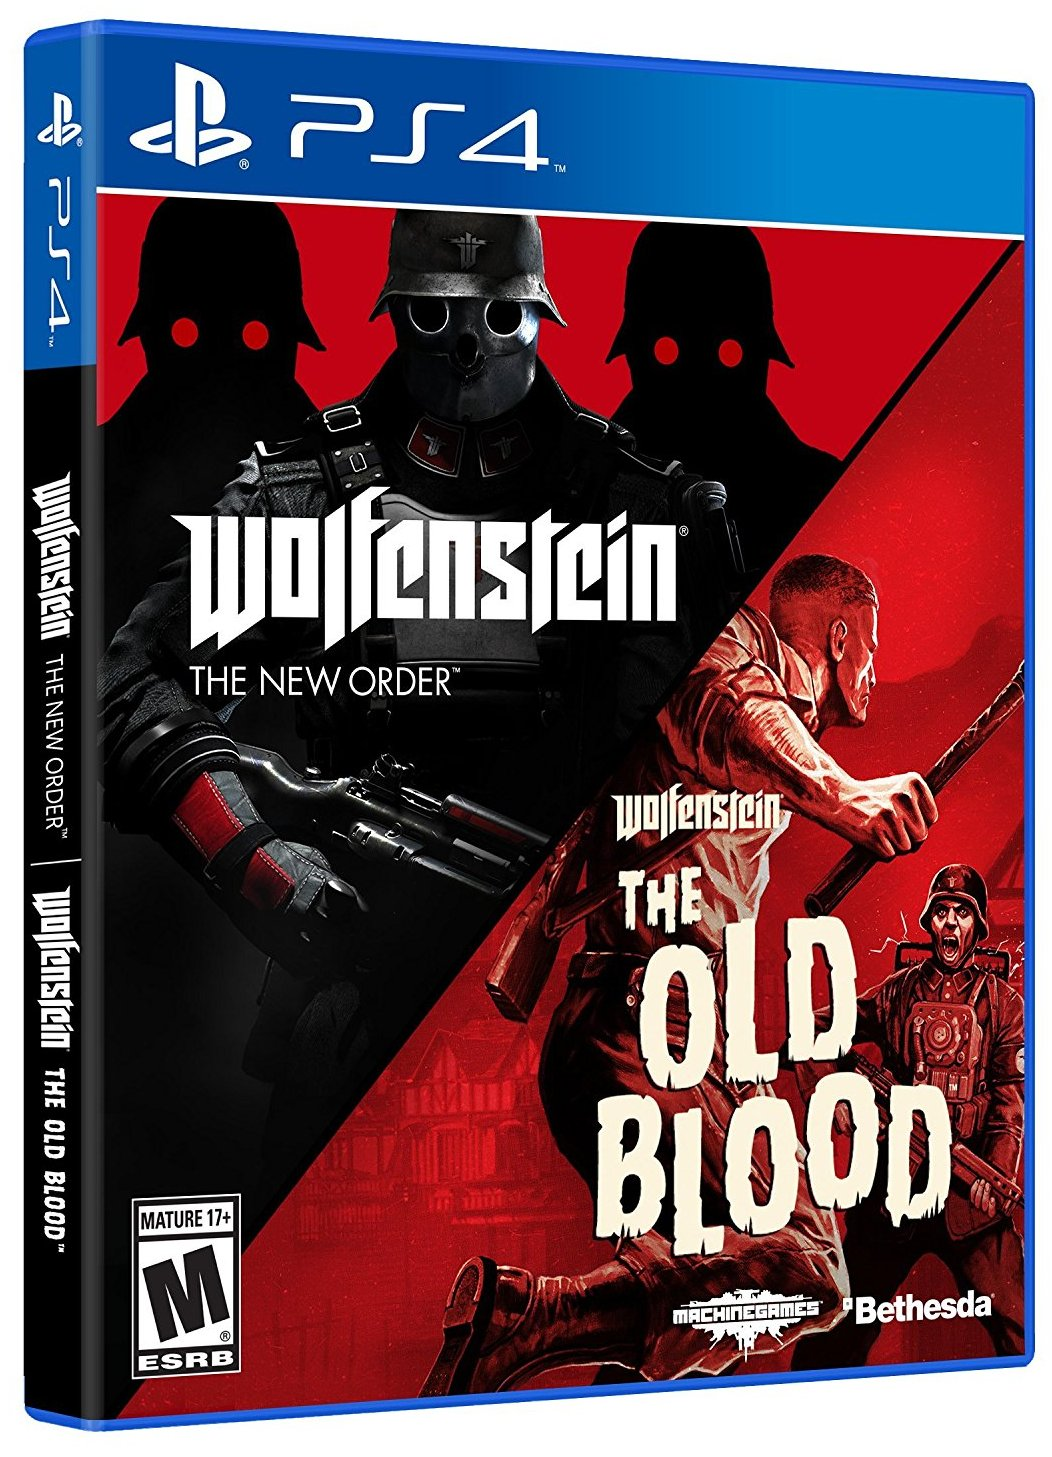 Wolfenstein The New Order and The Old Blood Double Pack - PS4